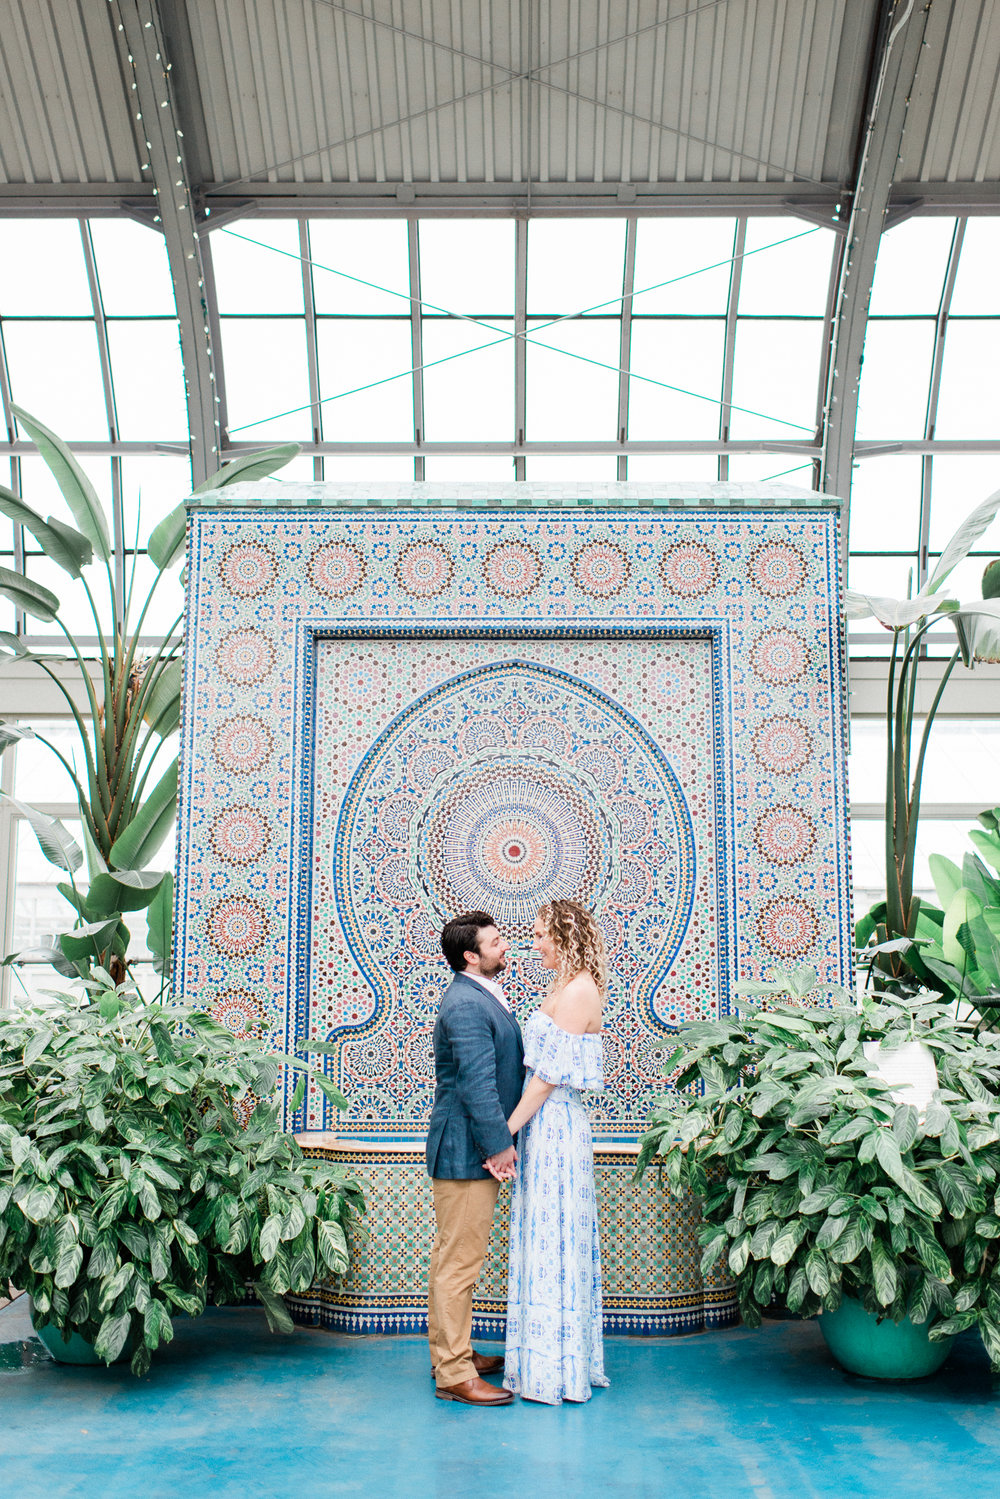 Brittany Bekas - Garfield Park Conservatory Chicago Engagement Photos-13.jpg